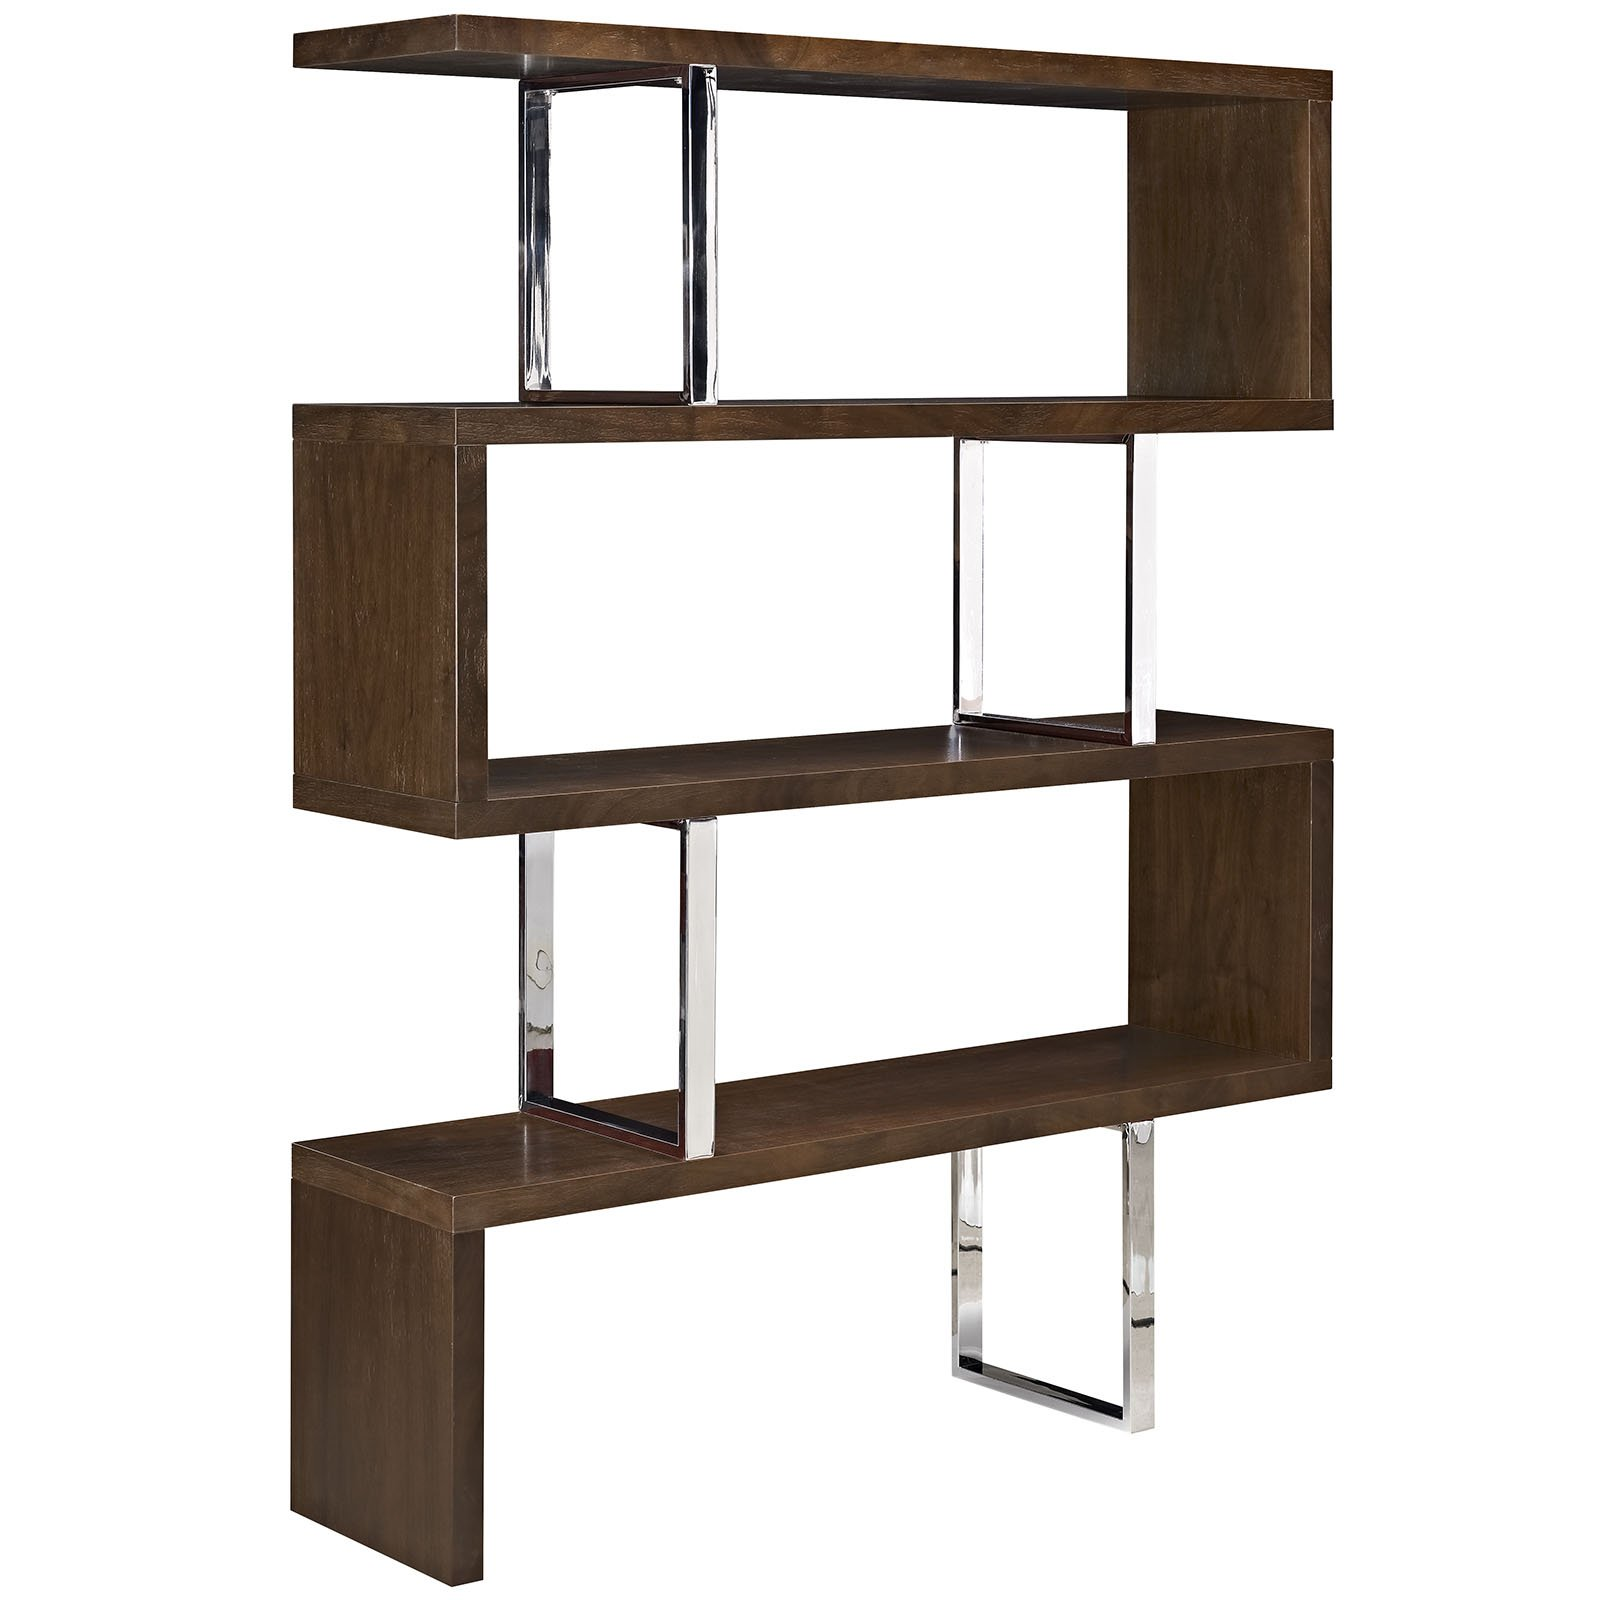 Meander Stand EEI-2046